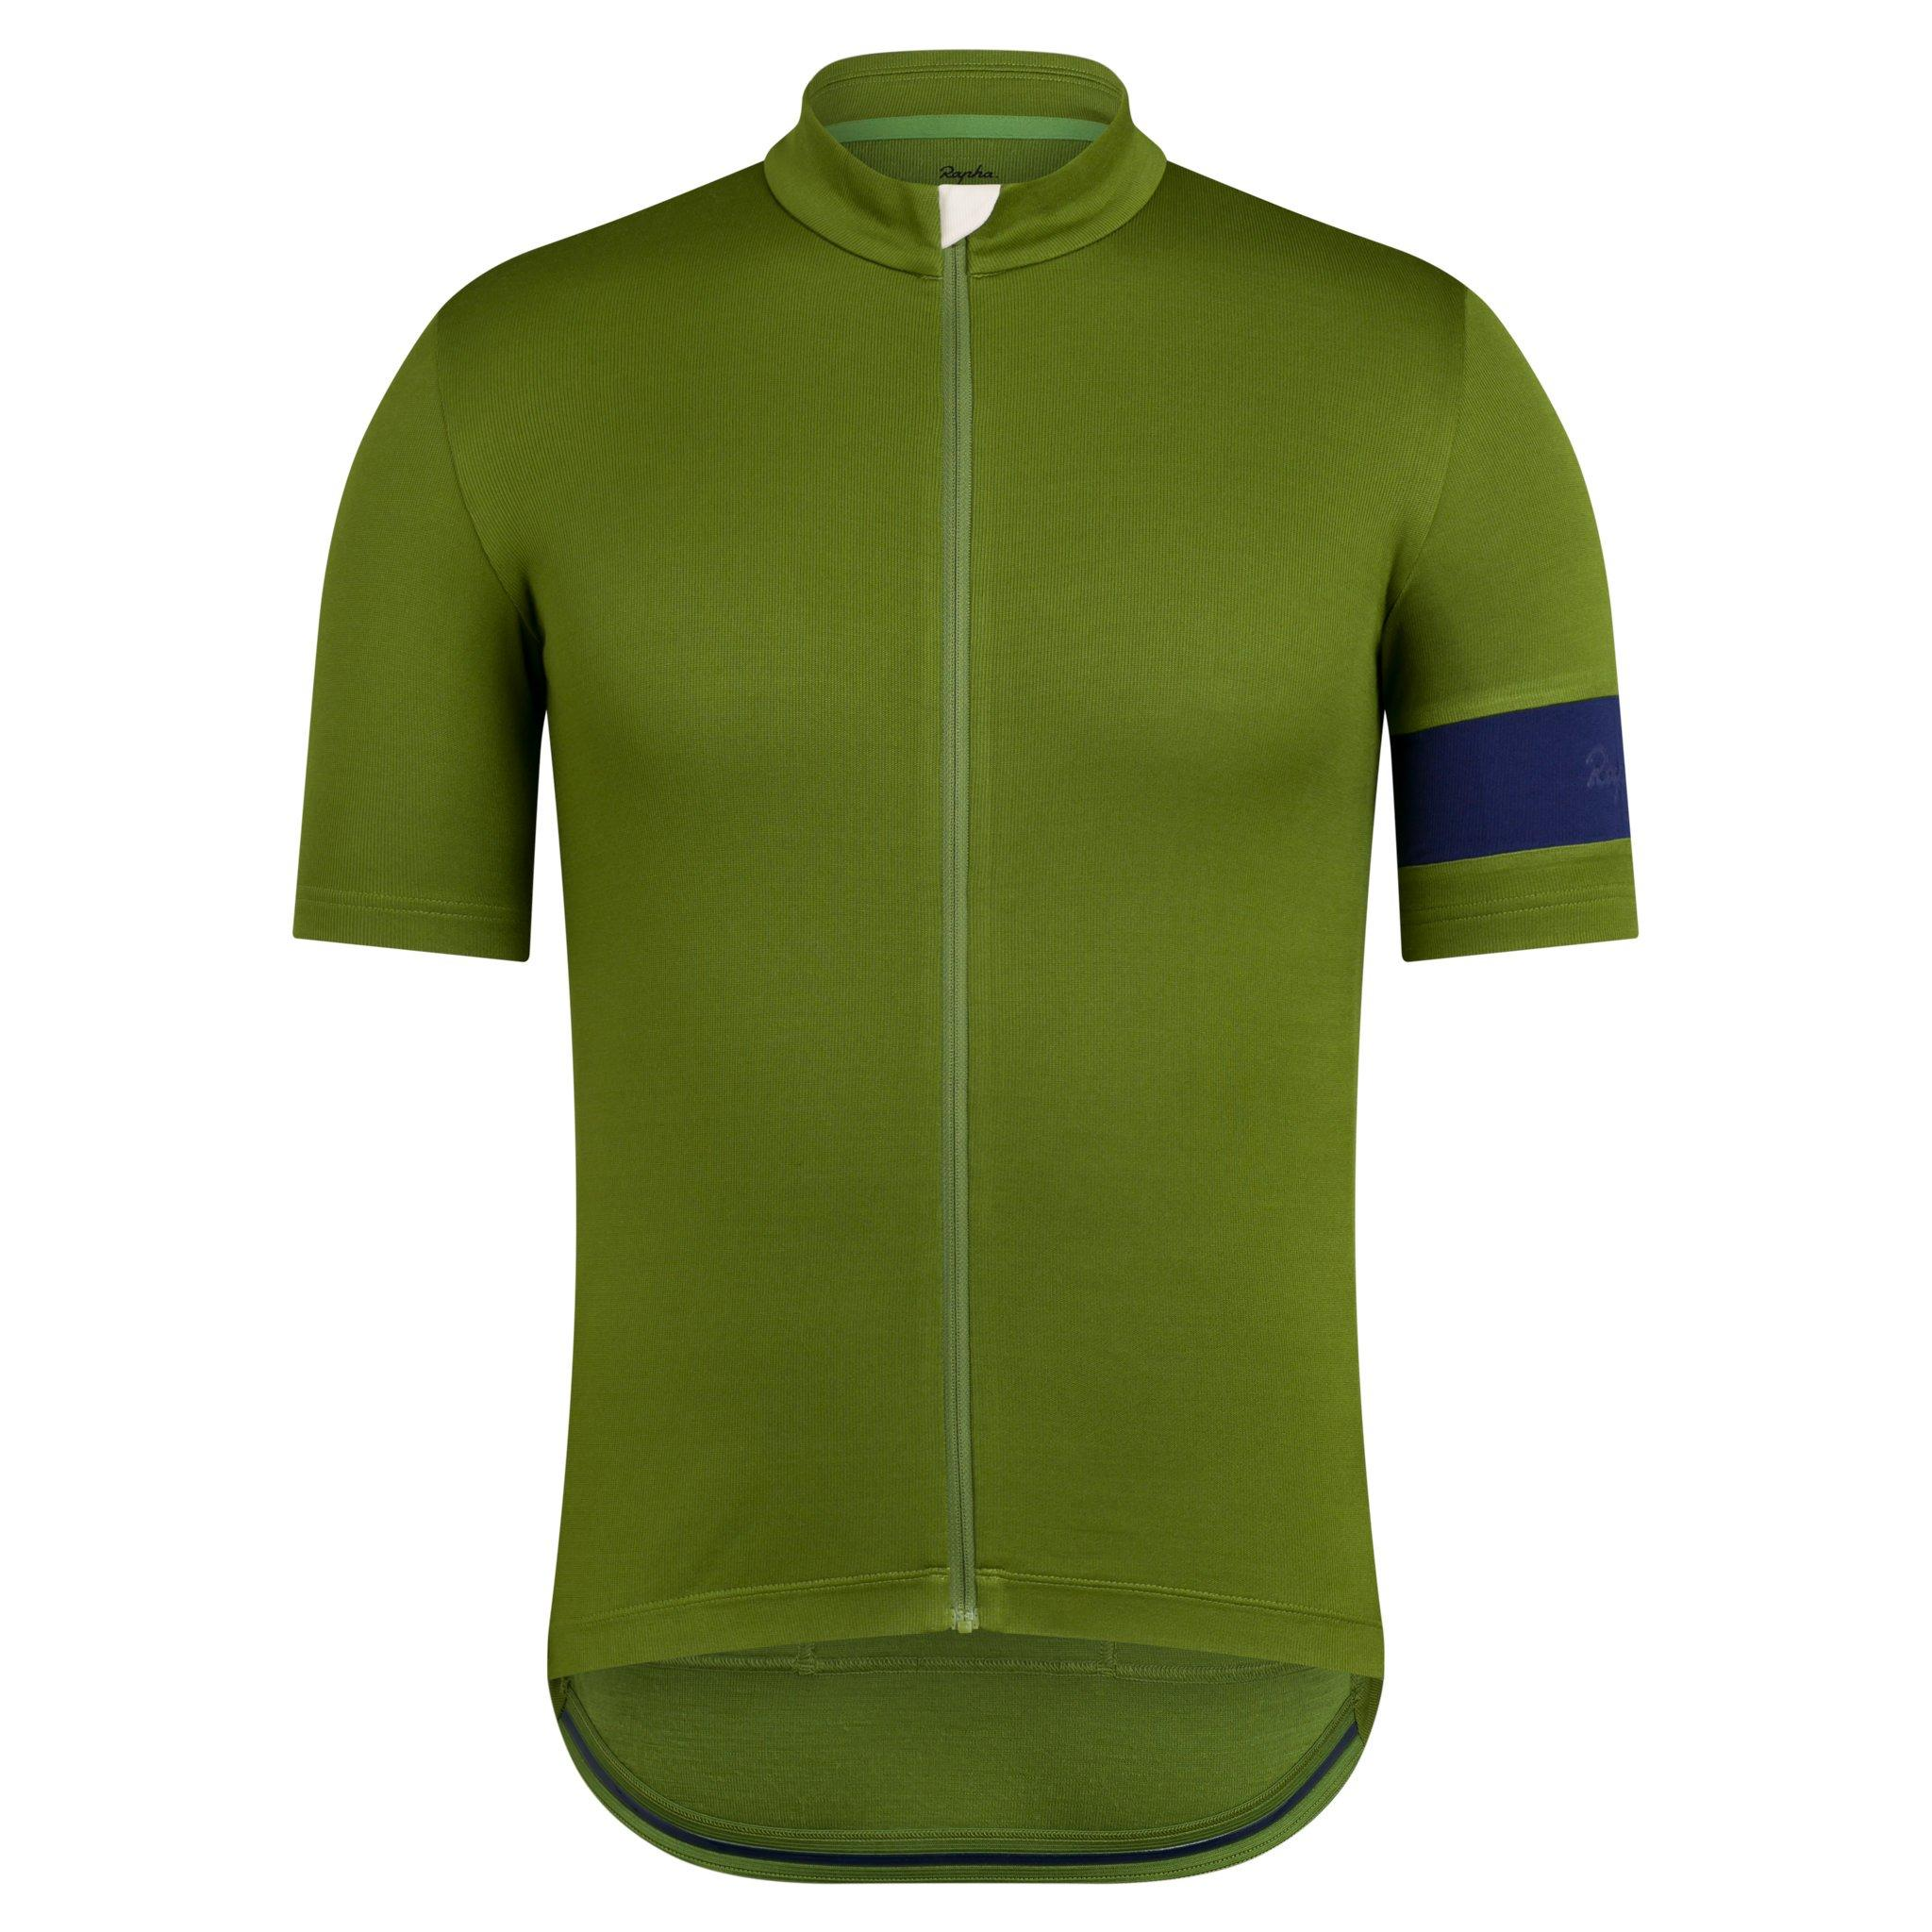 Rapha Men/'s Classic Jersey II Rose Dark Green Size Large Brand New With Tag